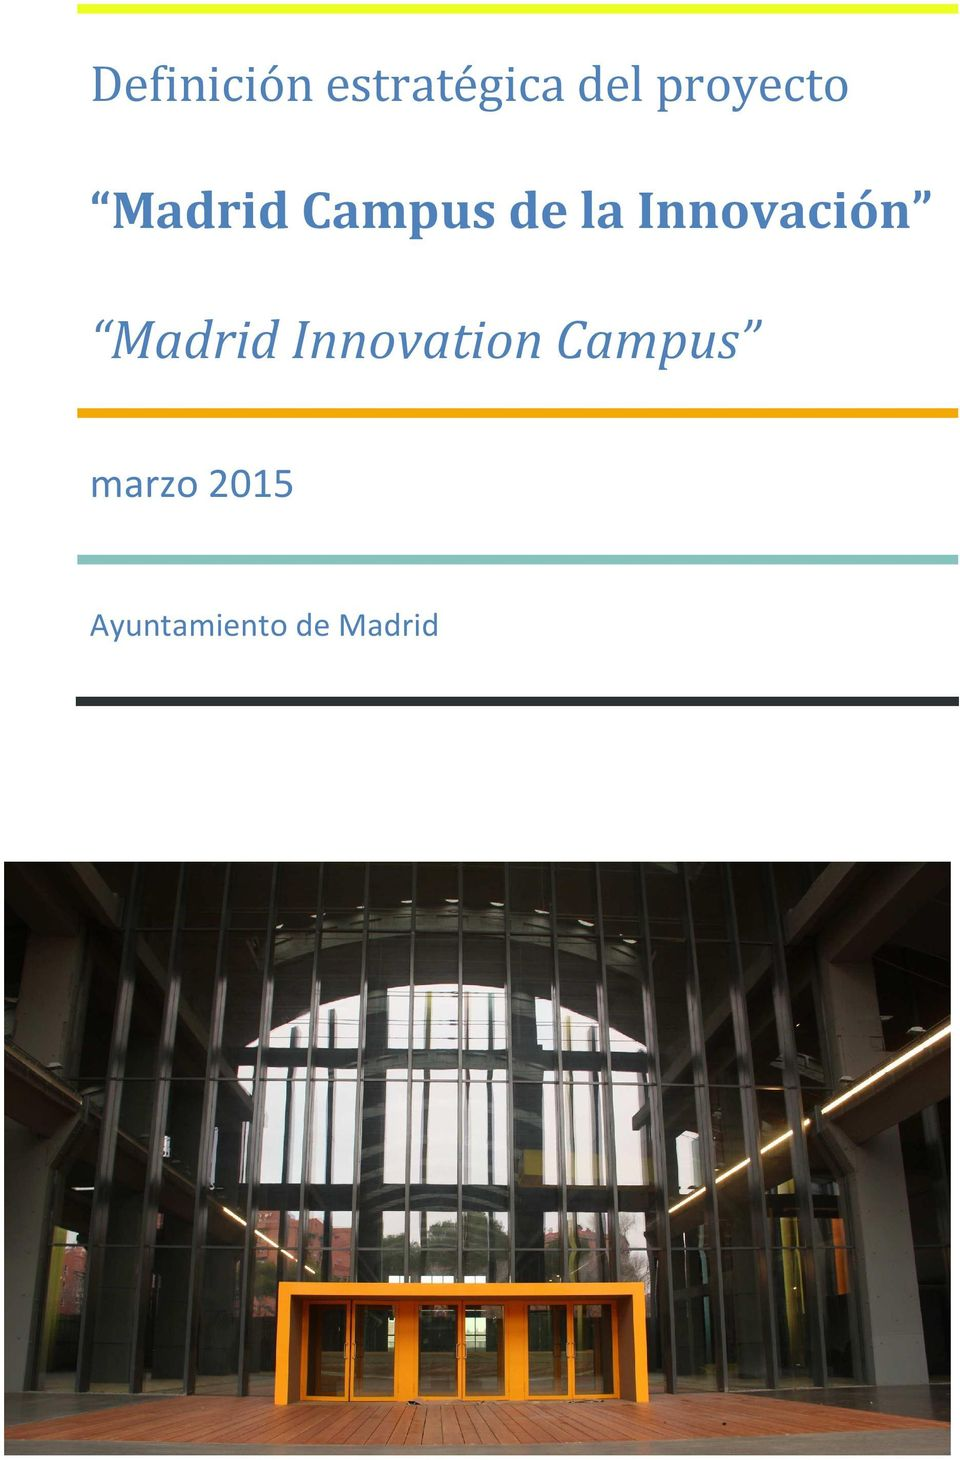 Innovación Madrid Innovation